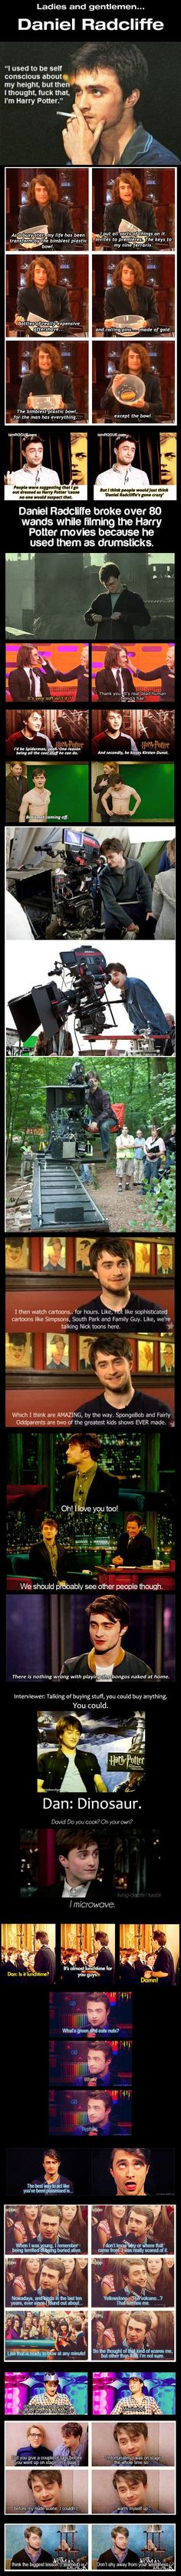 Ladies and Gentlemen...Daniel Radcliffe